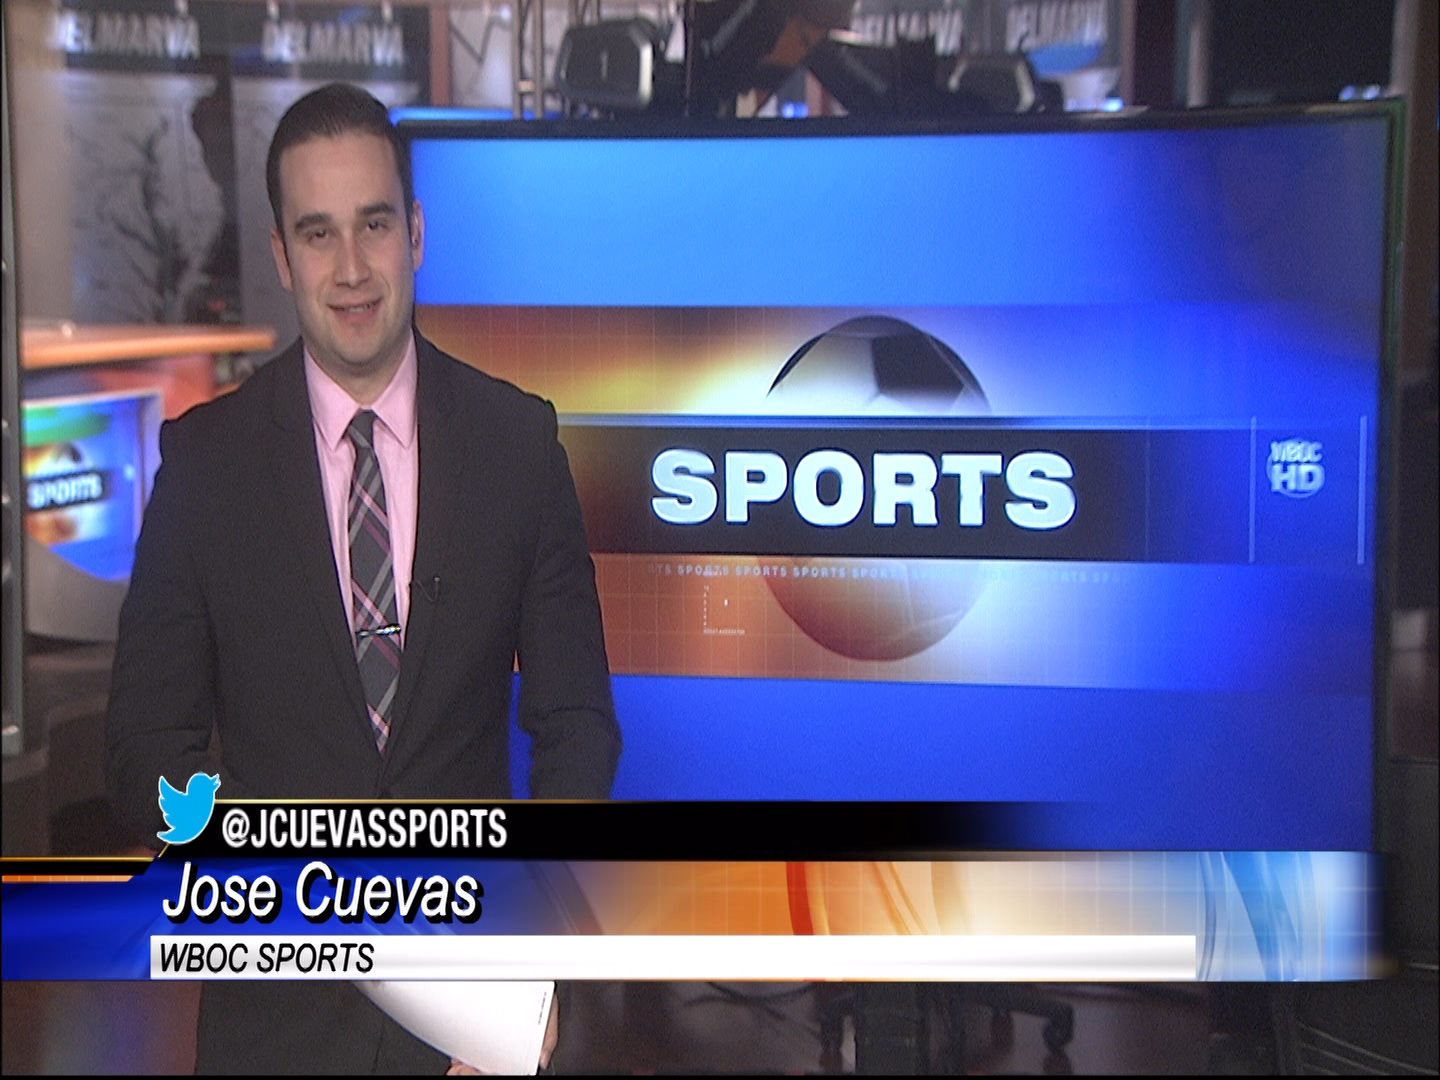 WBOC Sports Report – Sunday March 31, 2019 Part 1